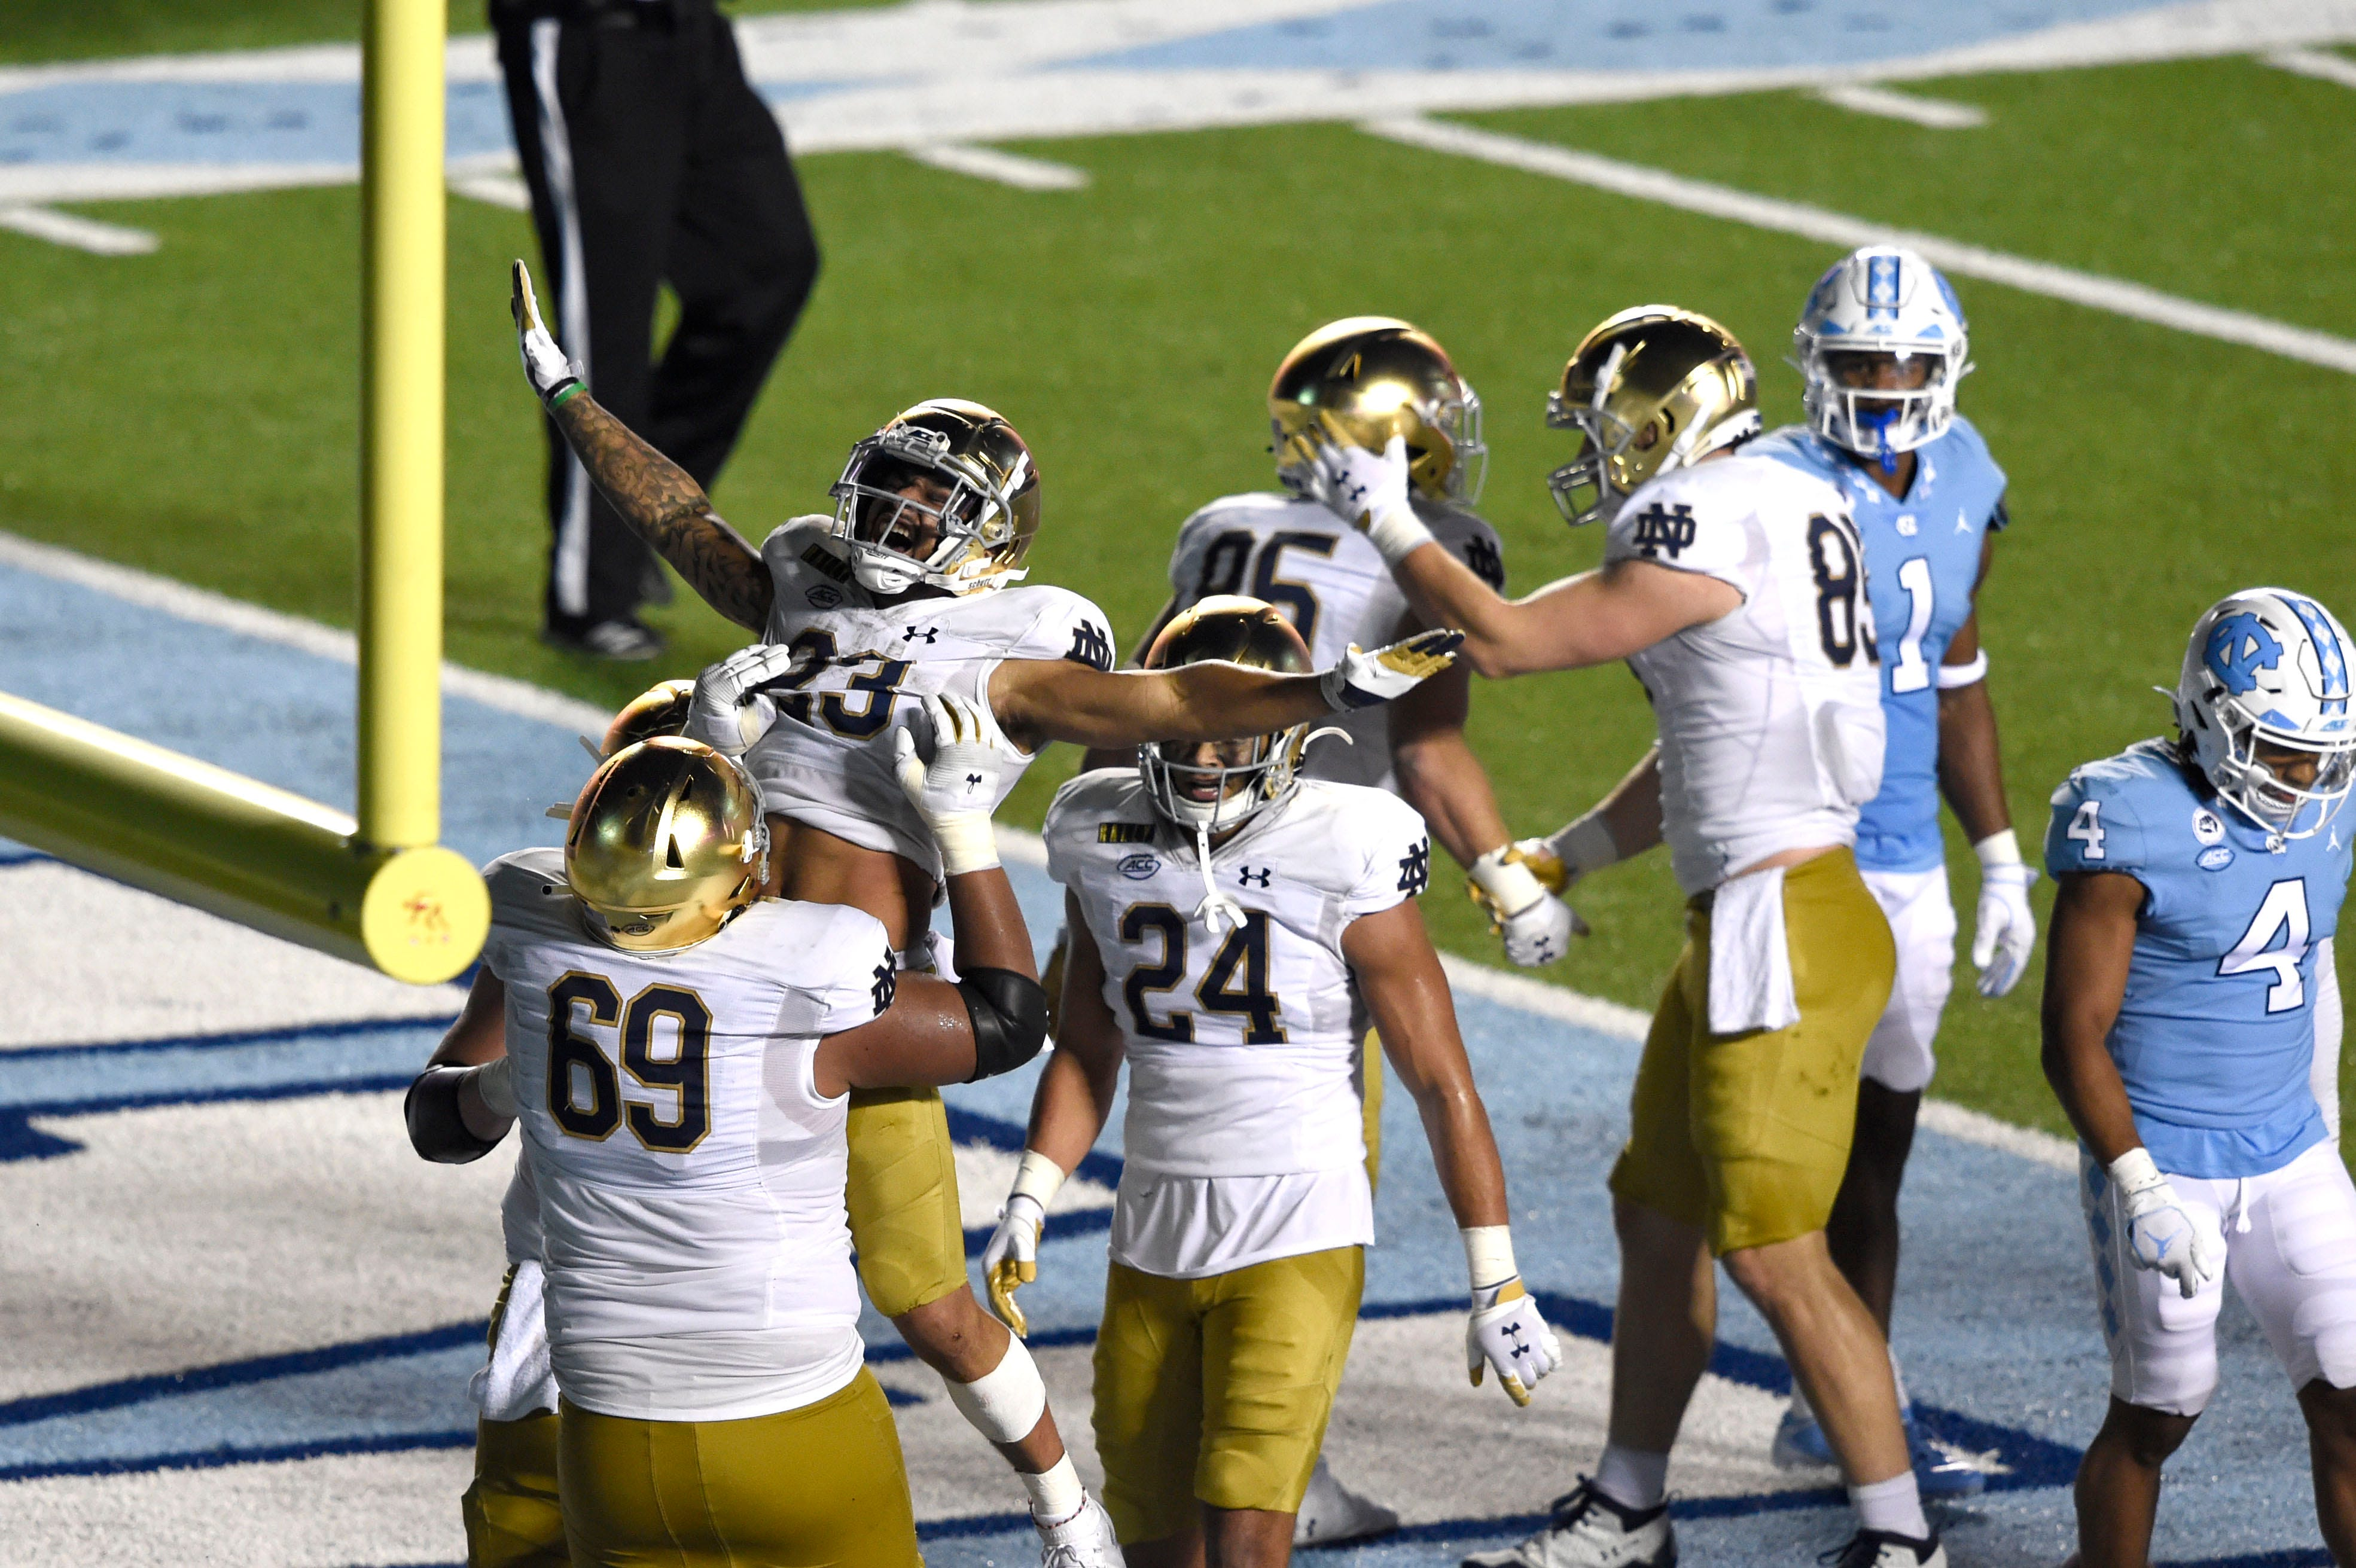 Opinion: This Notre Dame team is wired to win. Maybe the ACC, and maybe even beyond.